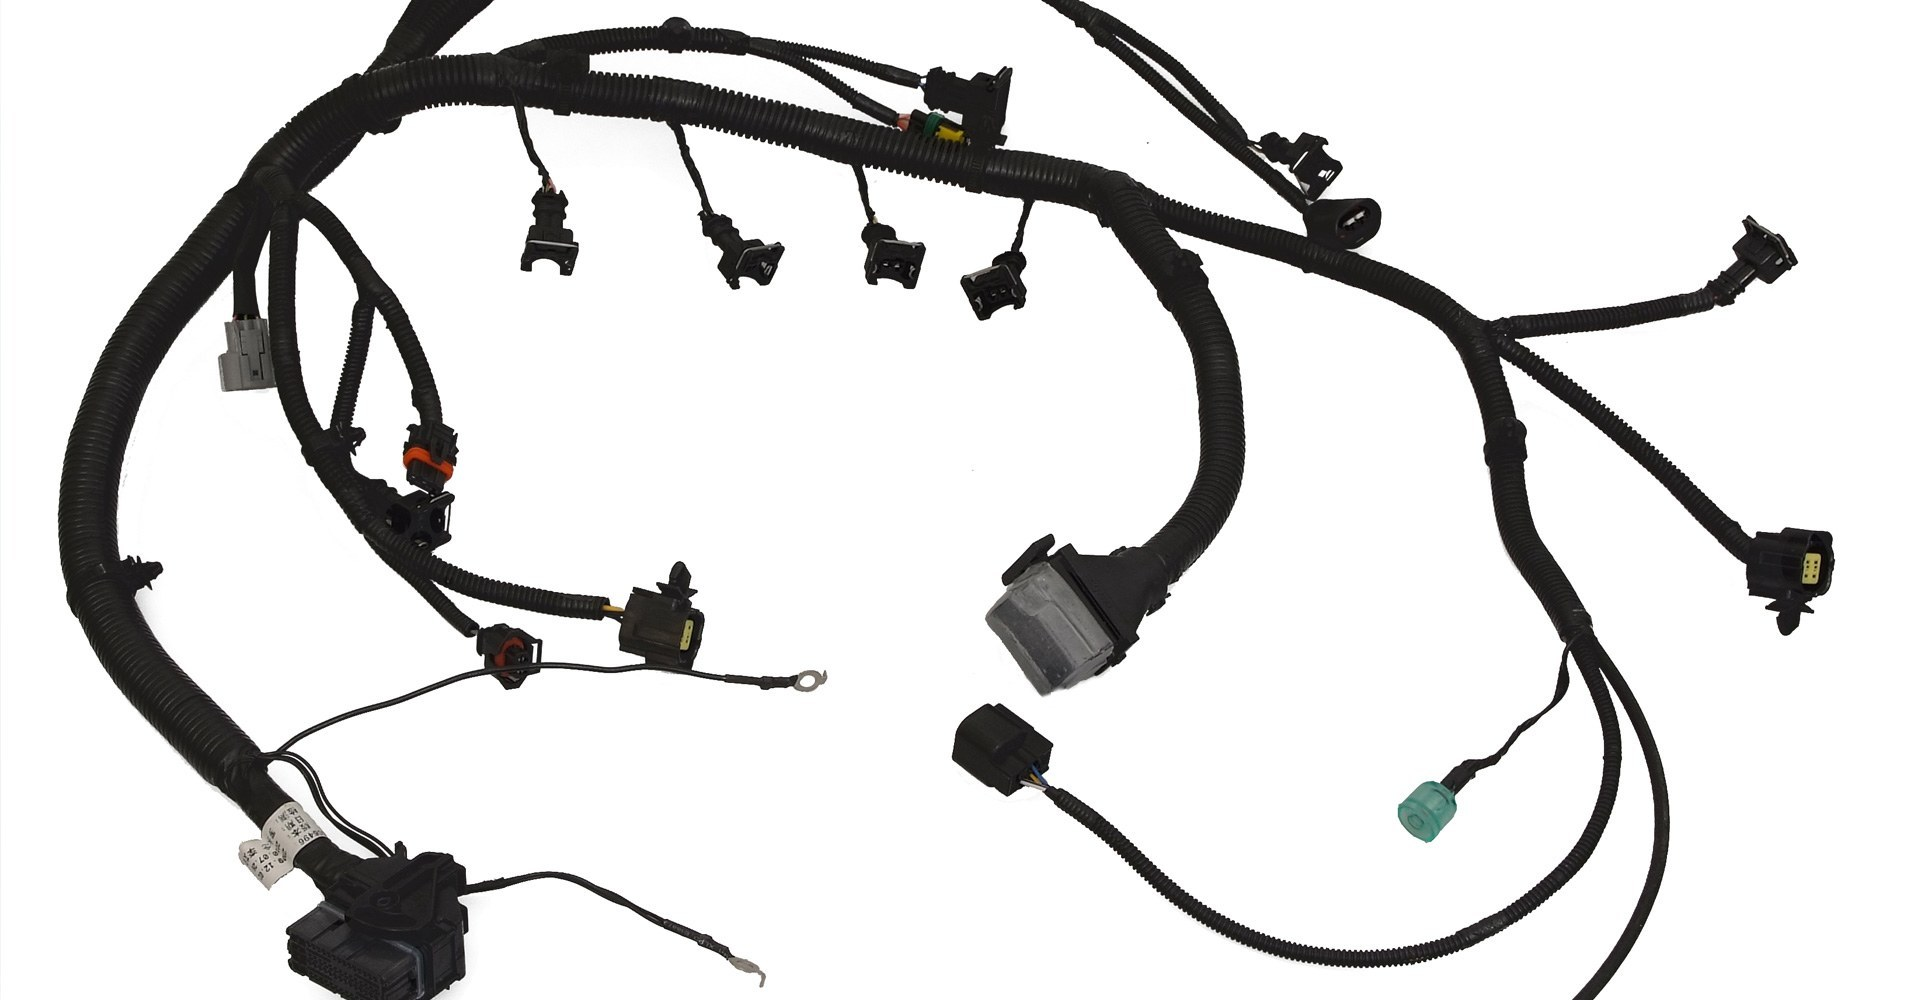 wireharness automotive wire harness products lorom auto wire harness at webbmarketing.co